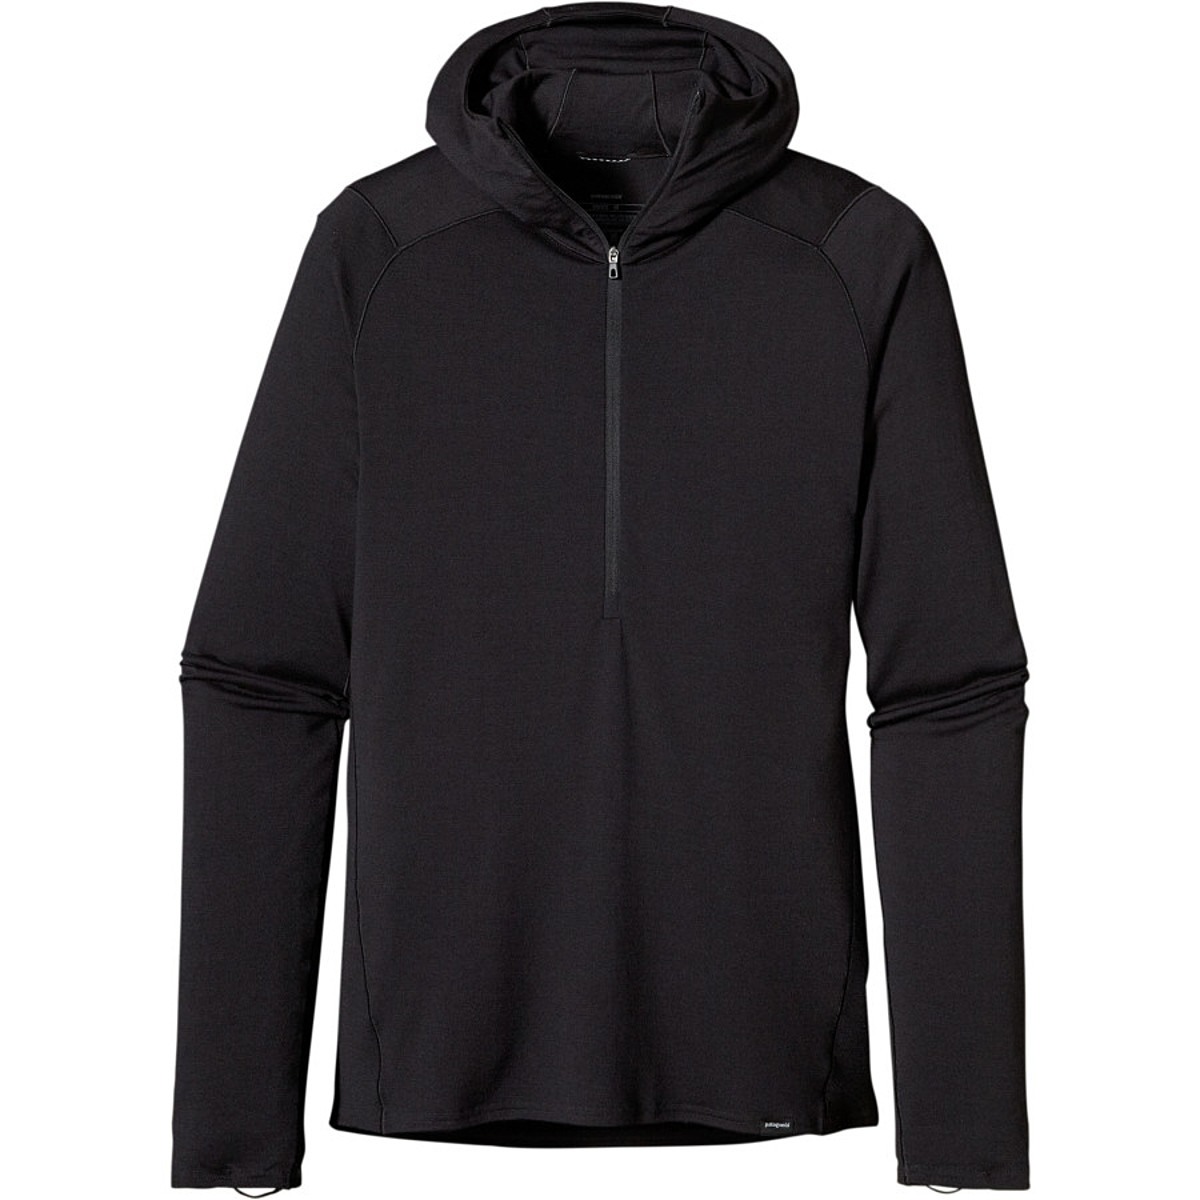 photo: Patagonia Merino 3 Midweight Hoody base layer top